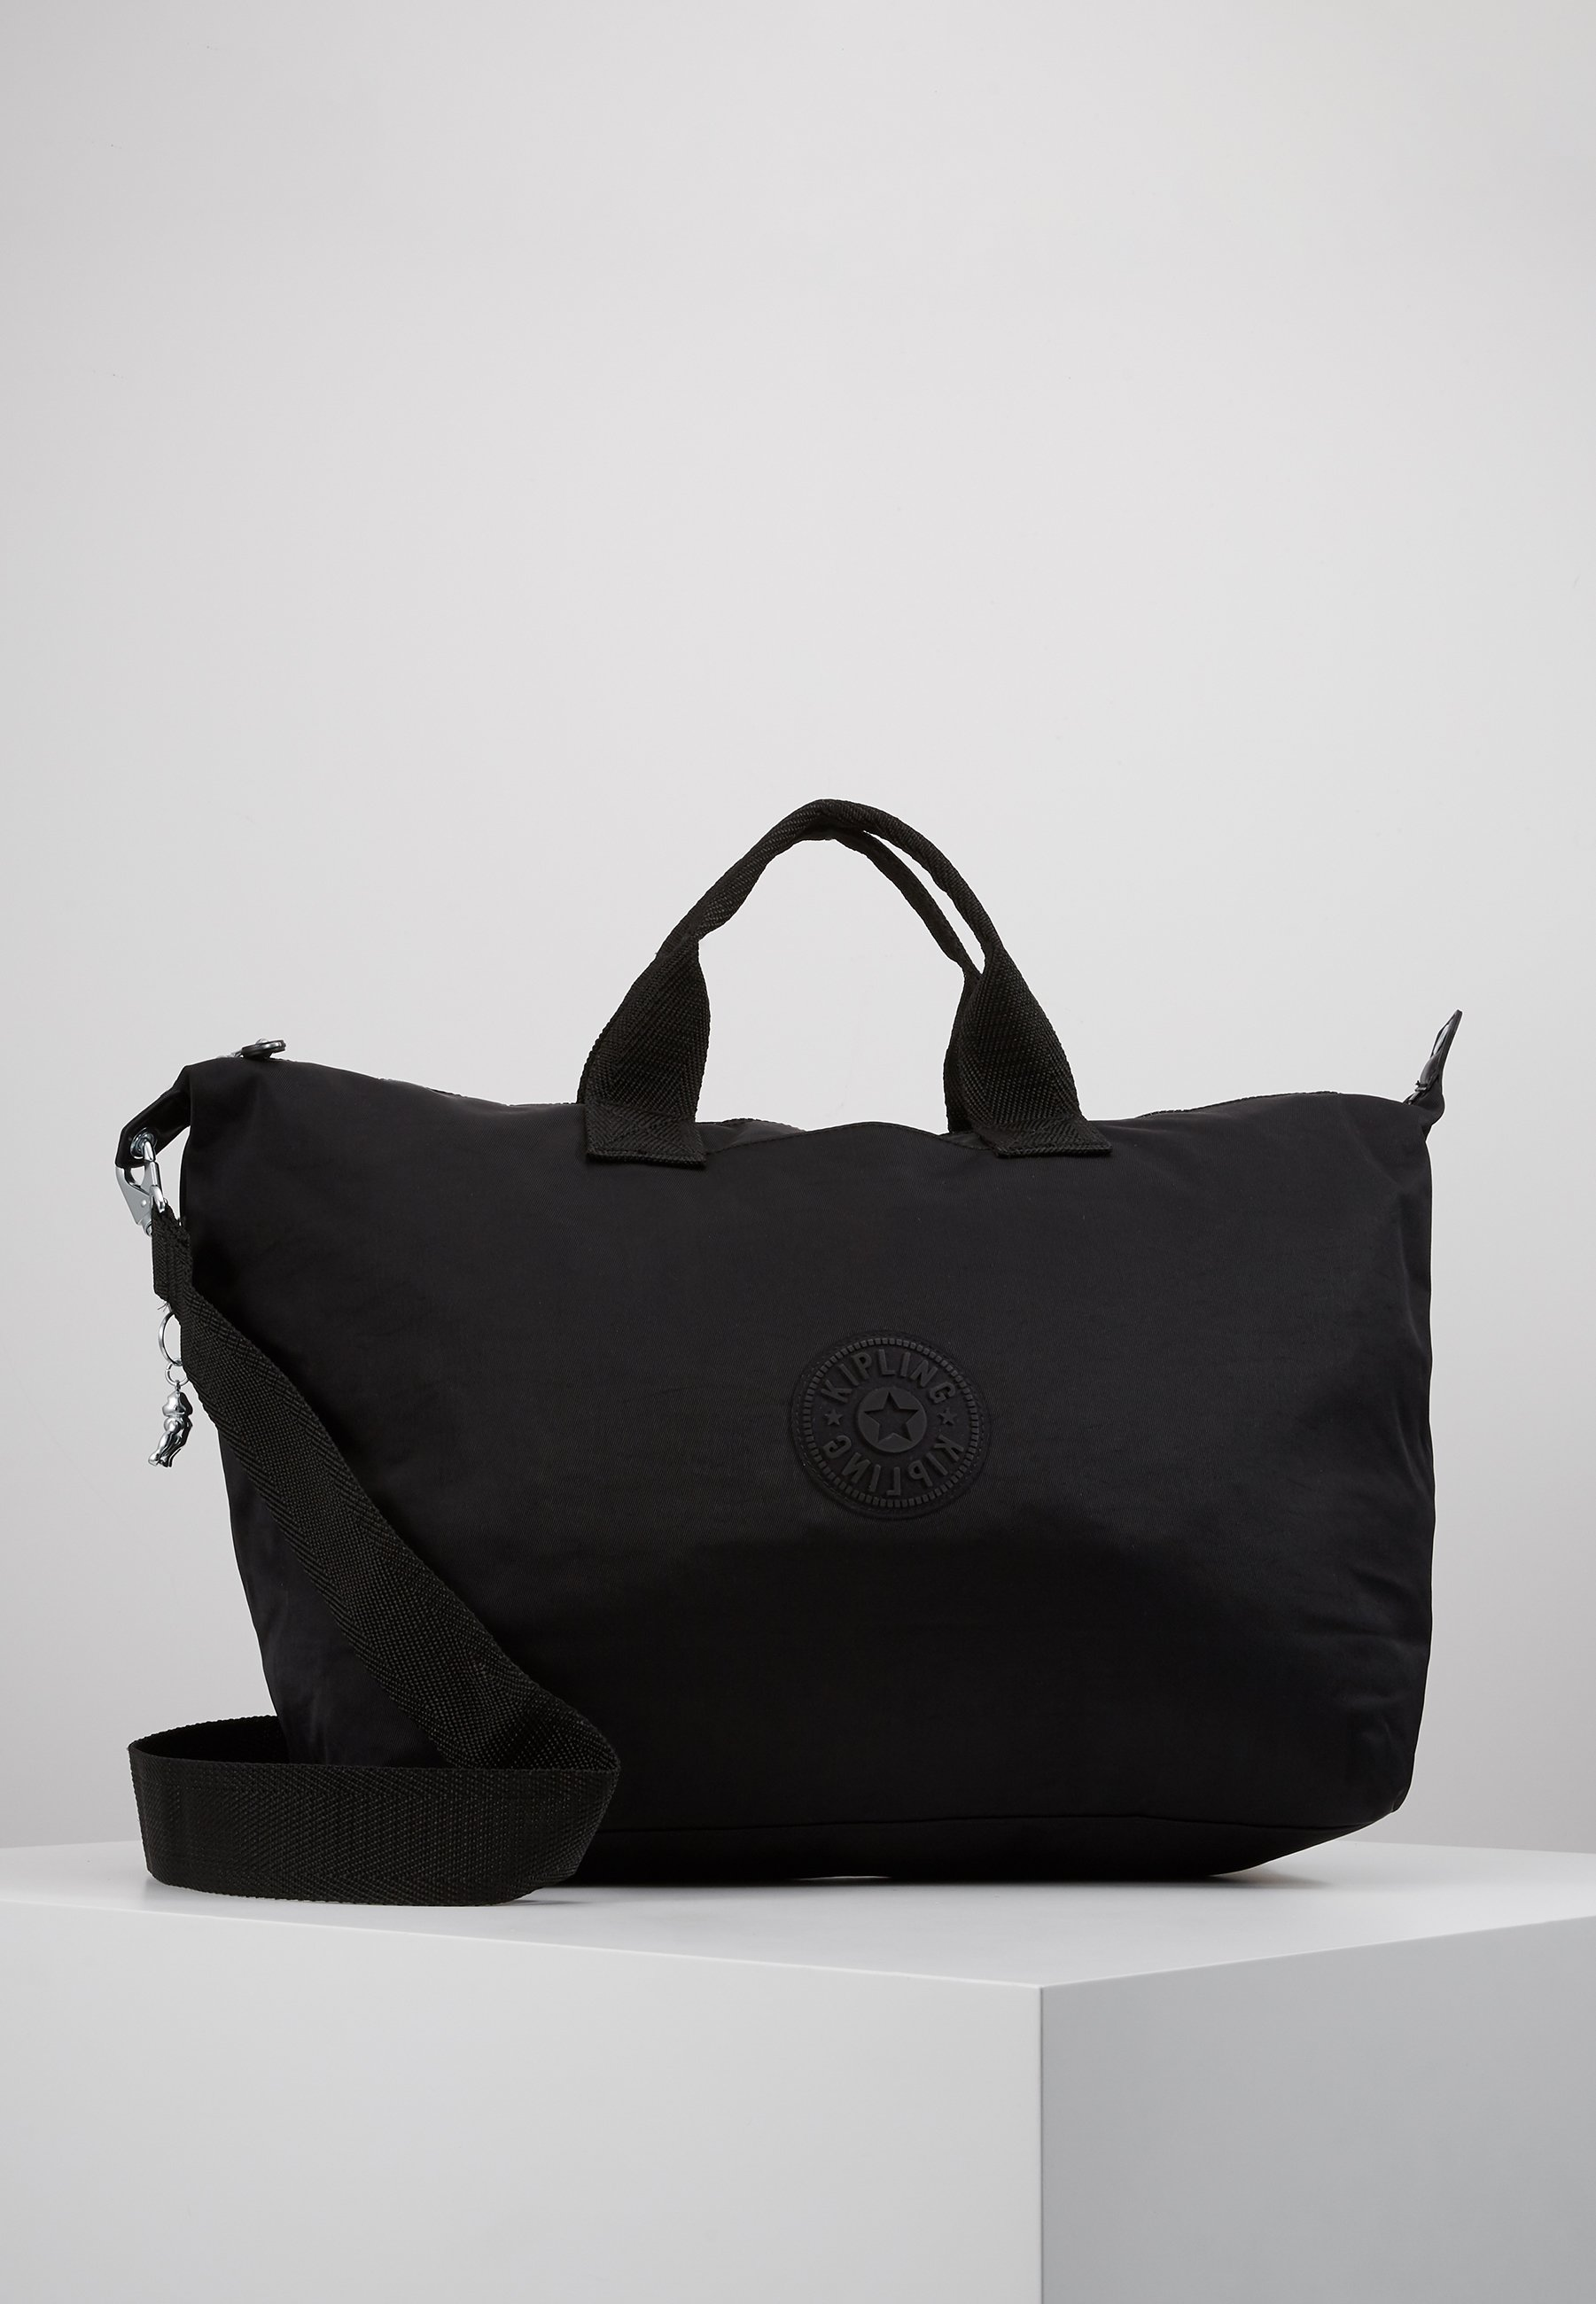 Kipling KALA M - Shopping bag - rich black - Borse & Accessori da donna Unisex